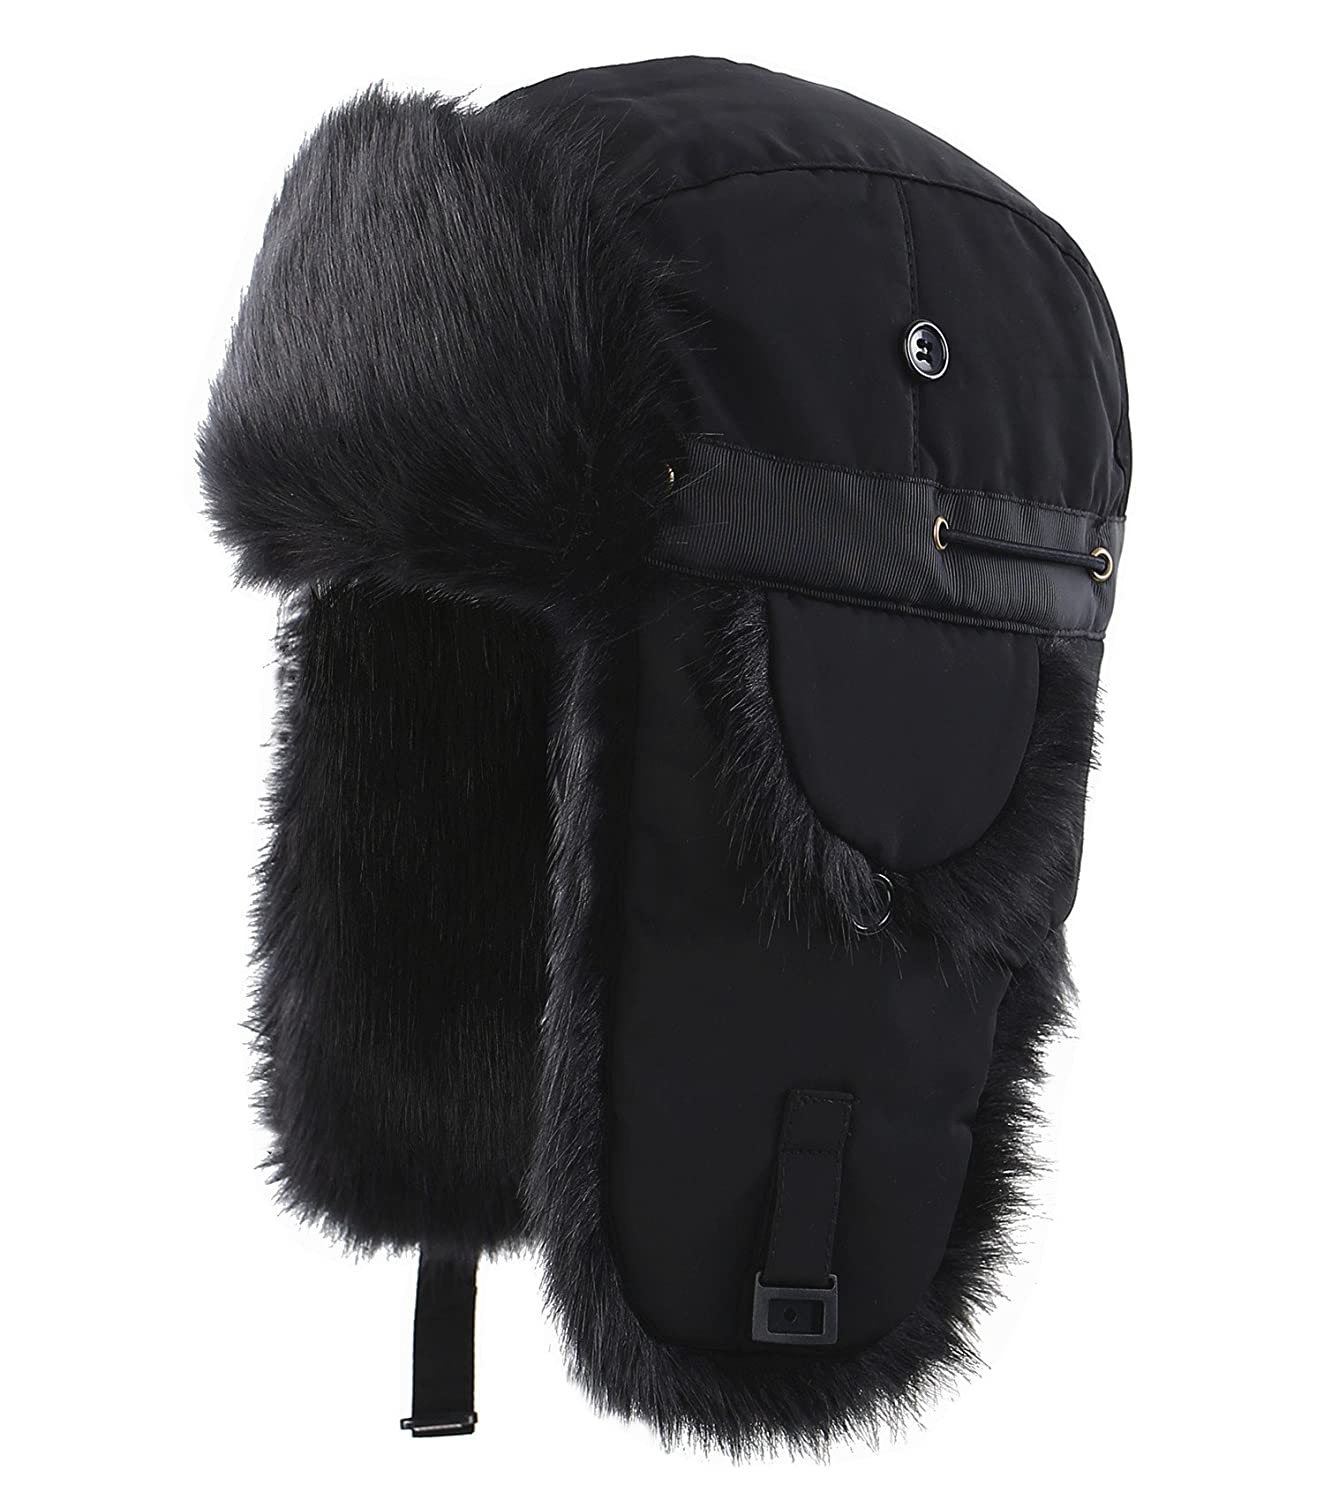 Connectyle Unisex Faux Fur Lined Trooper Trapper Hat Warm Winter Hunting  Bomber Hats with Ear Flaps 8f3558615e2f